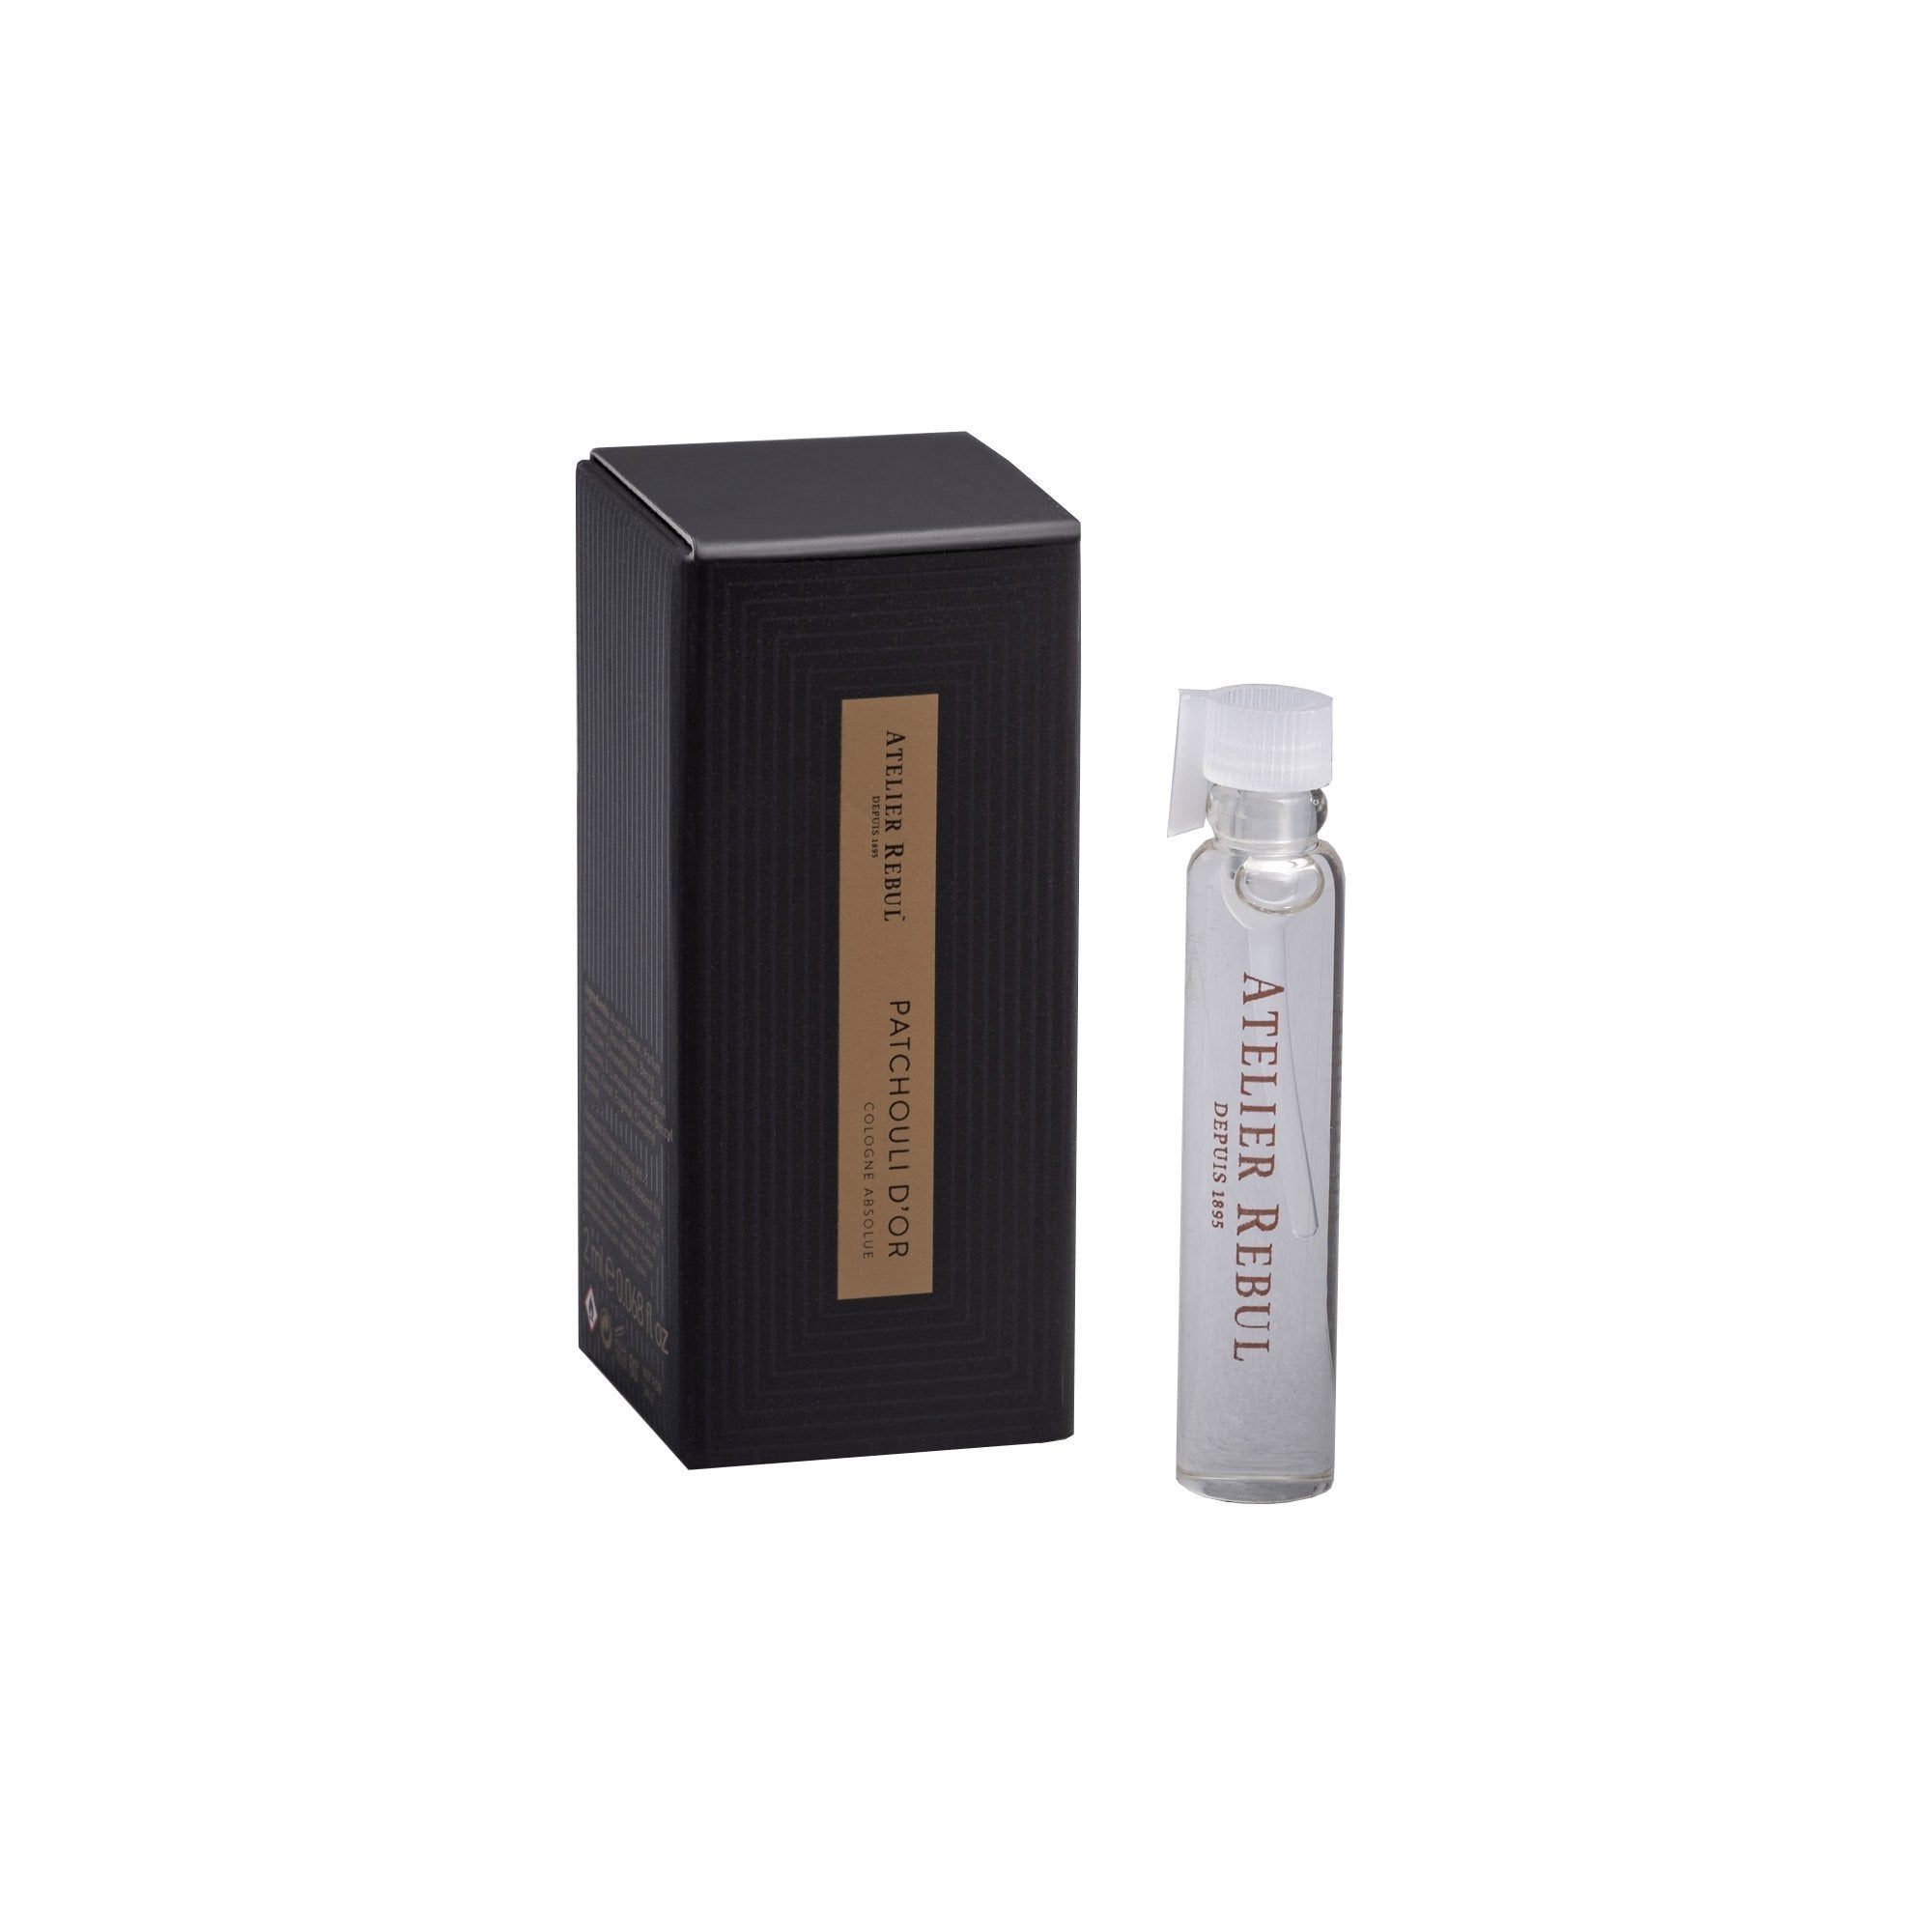 Patchouli D'or Cologne Absolue Sample 2ml